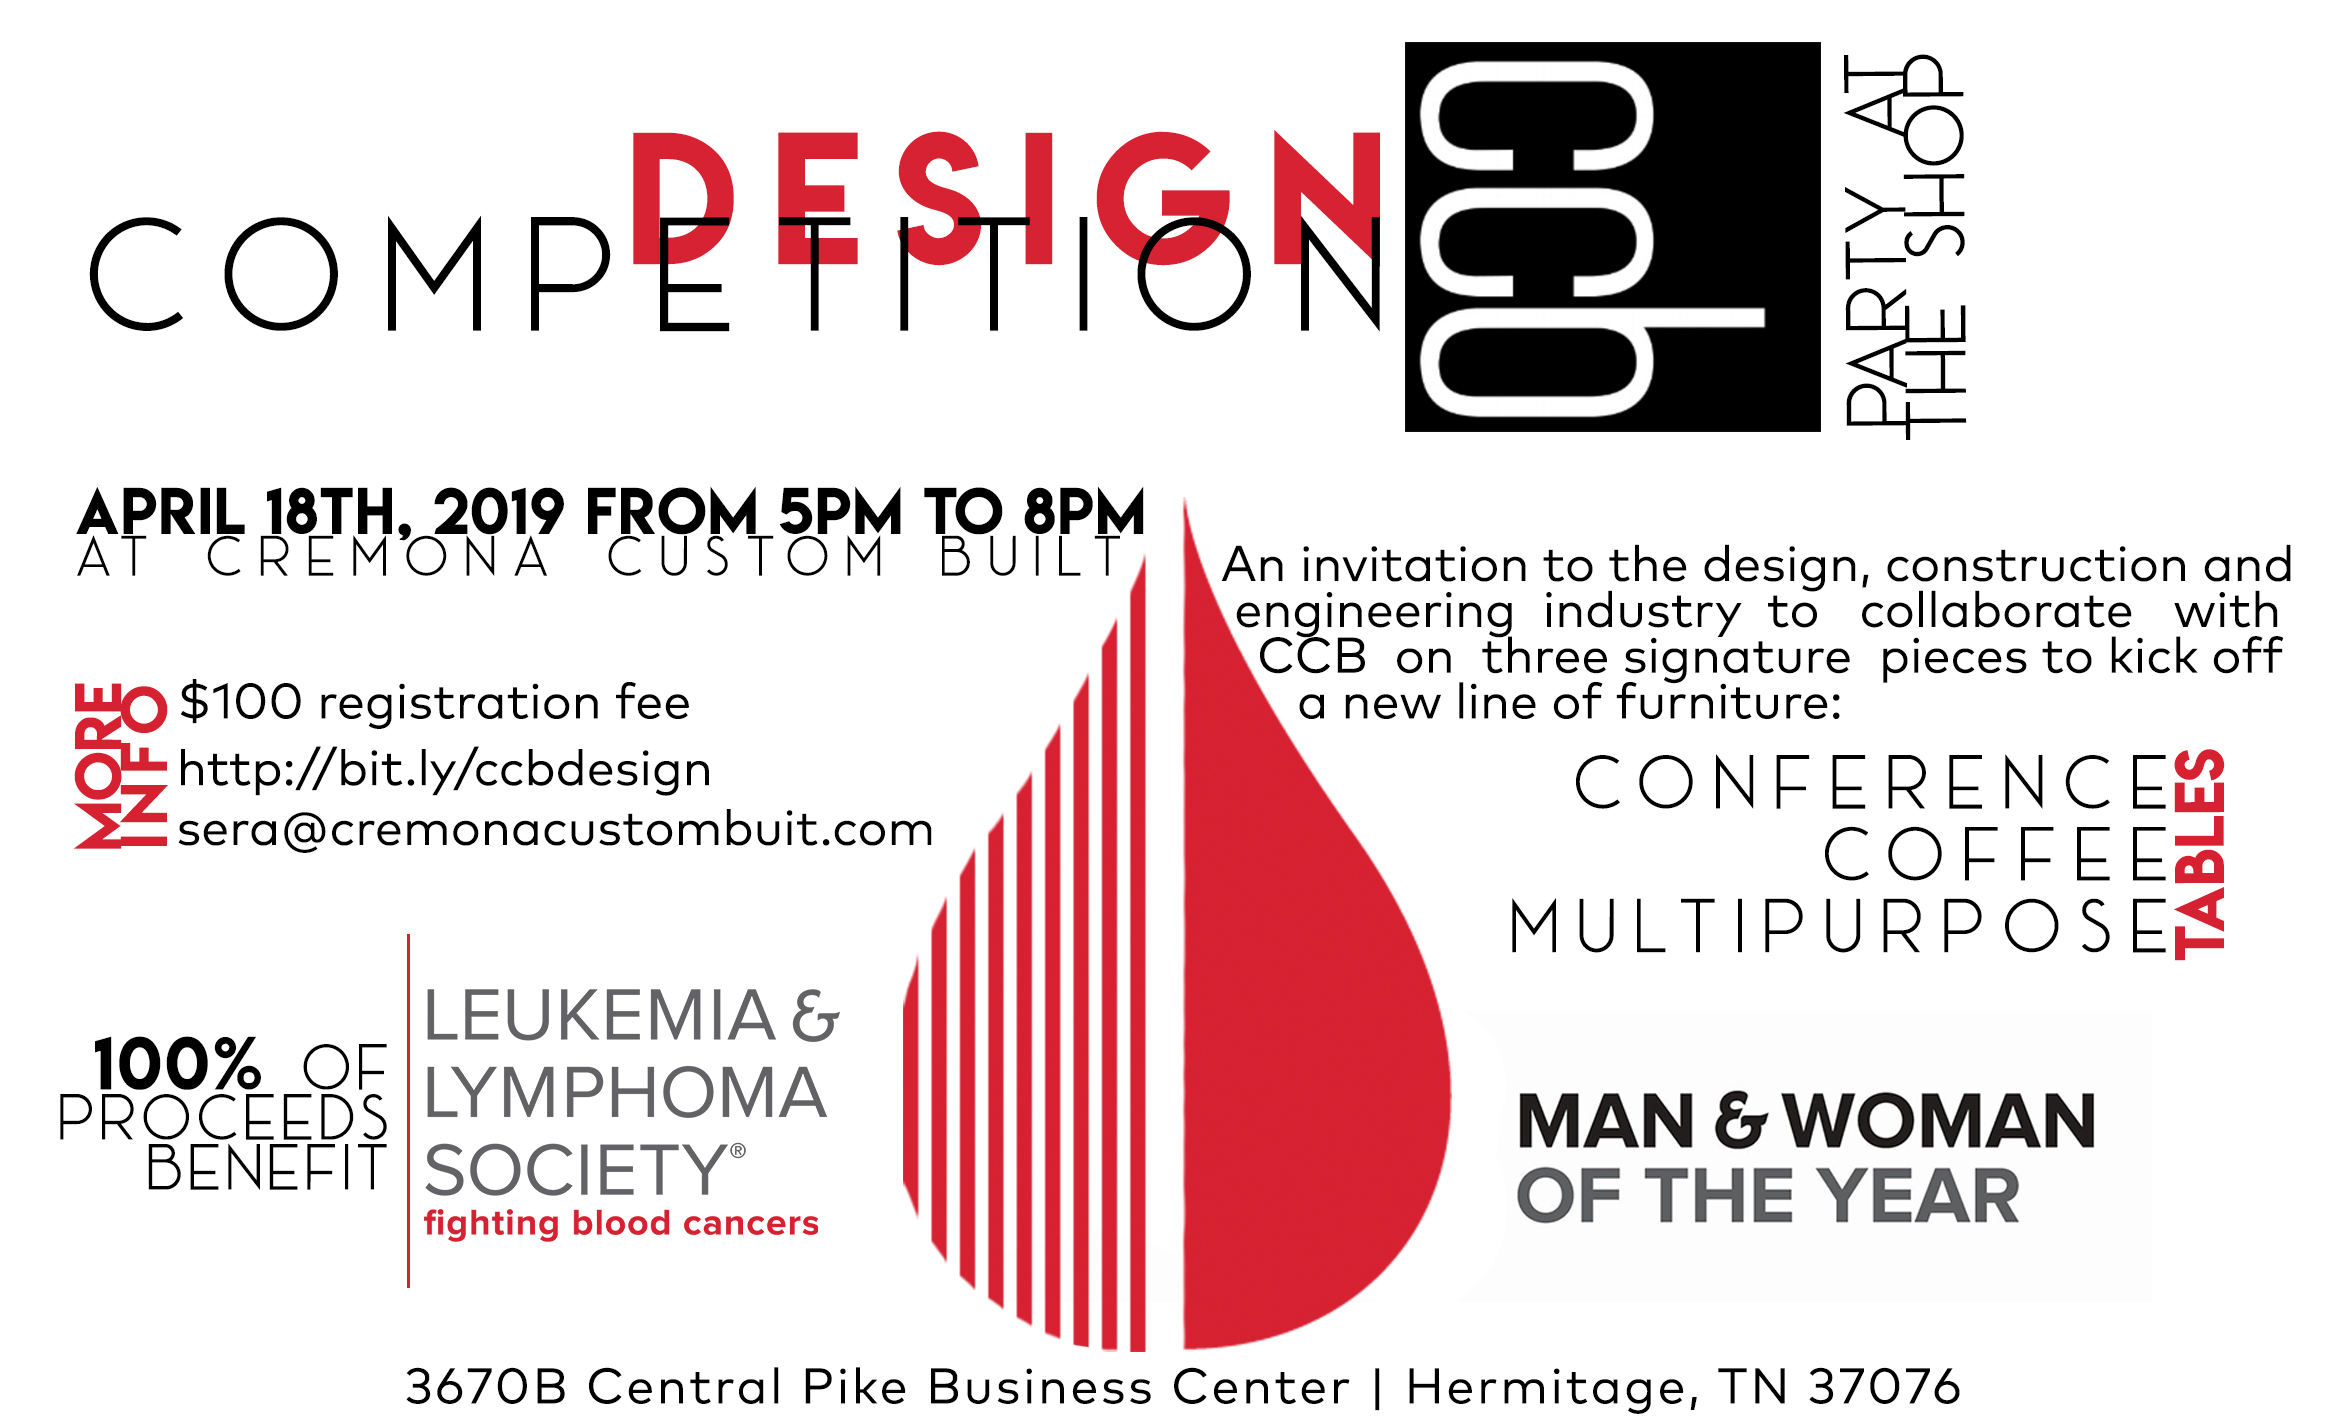 CCB Design Competition Ad.jpg